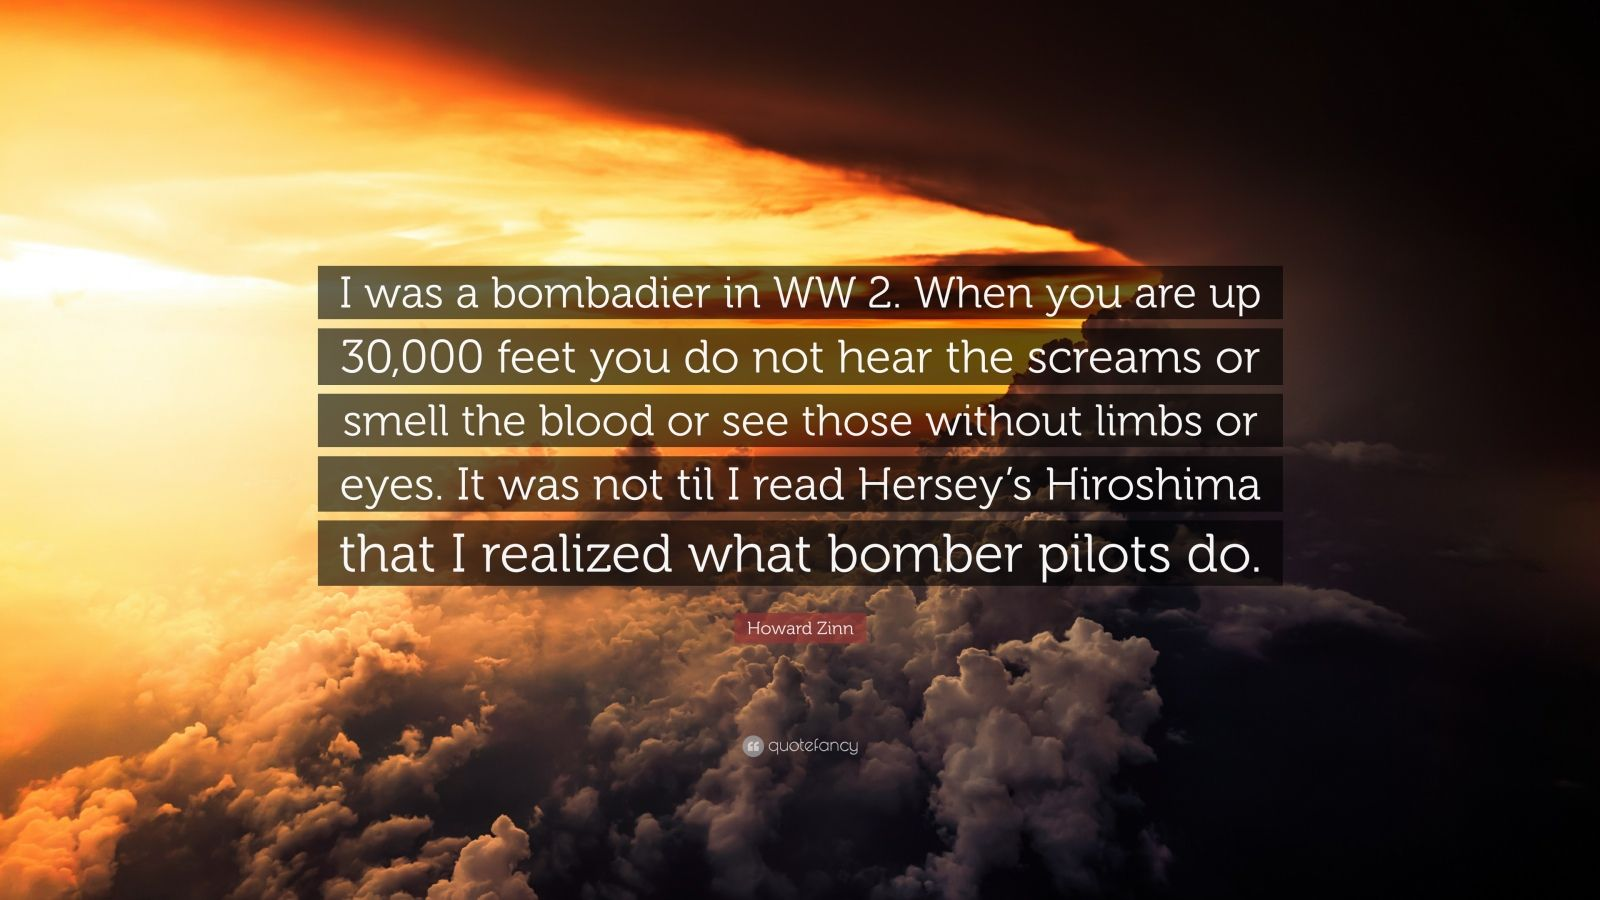 """Howard Zinn Quote: """"I was a bombadier in WW 2. When you are up 30,000 feet you do not hear the screams or smell the blood or see those without limbs or eyes. It was not til I read Hersey's Hiroshima that I realized what bomber pilots do."""""""